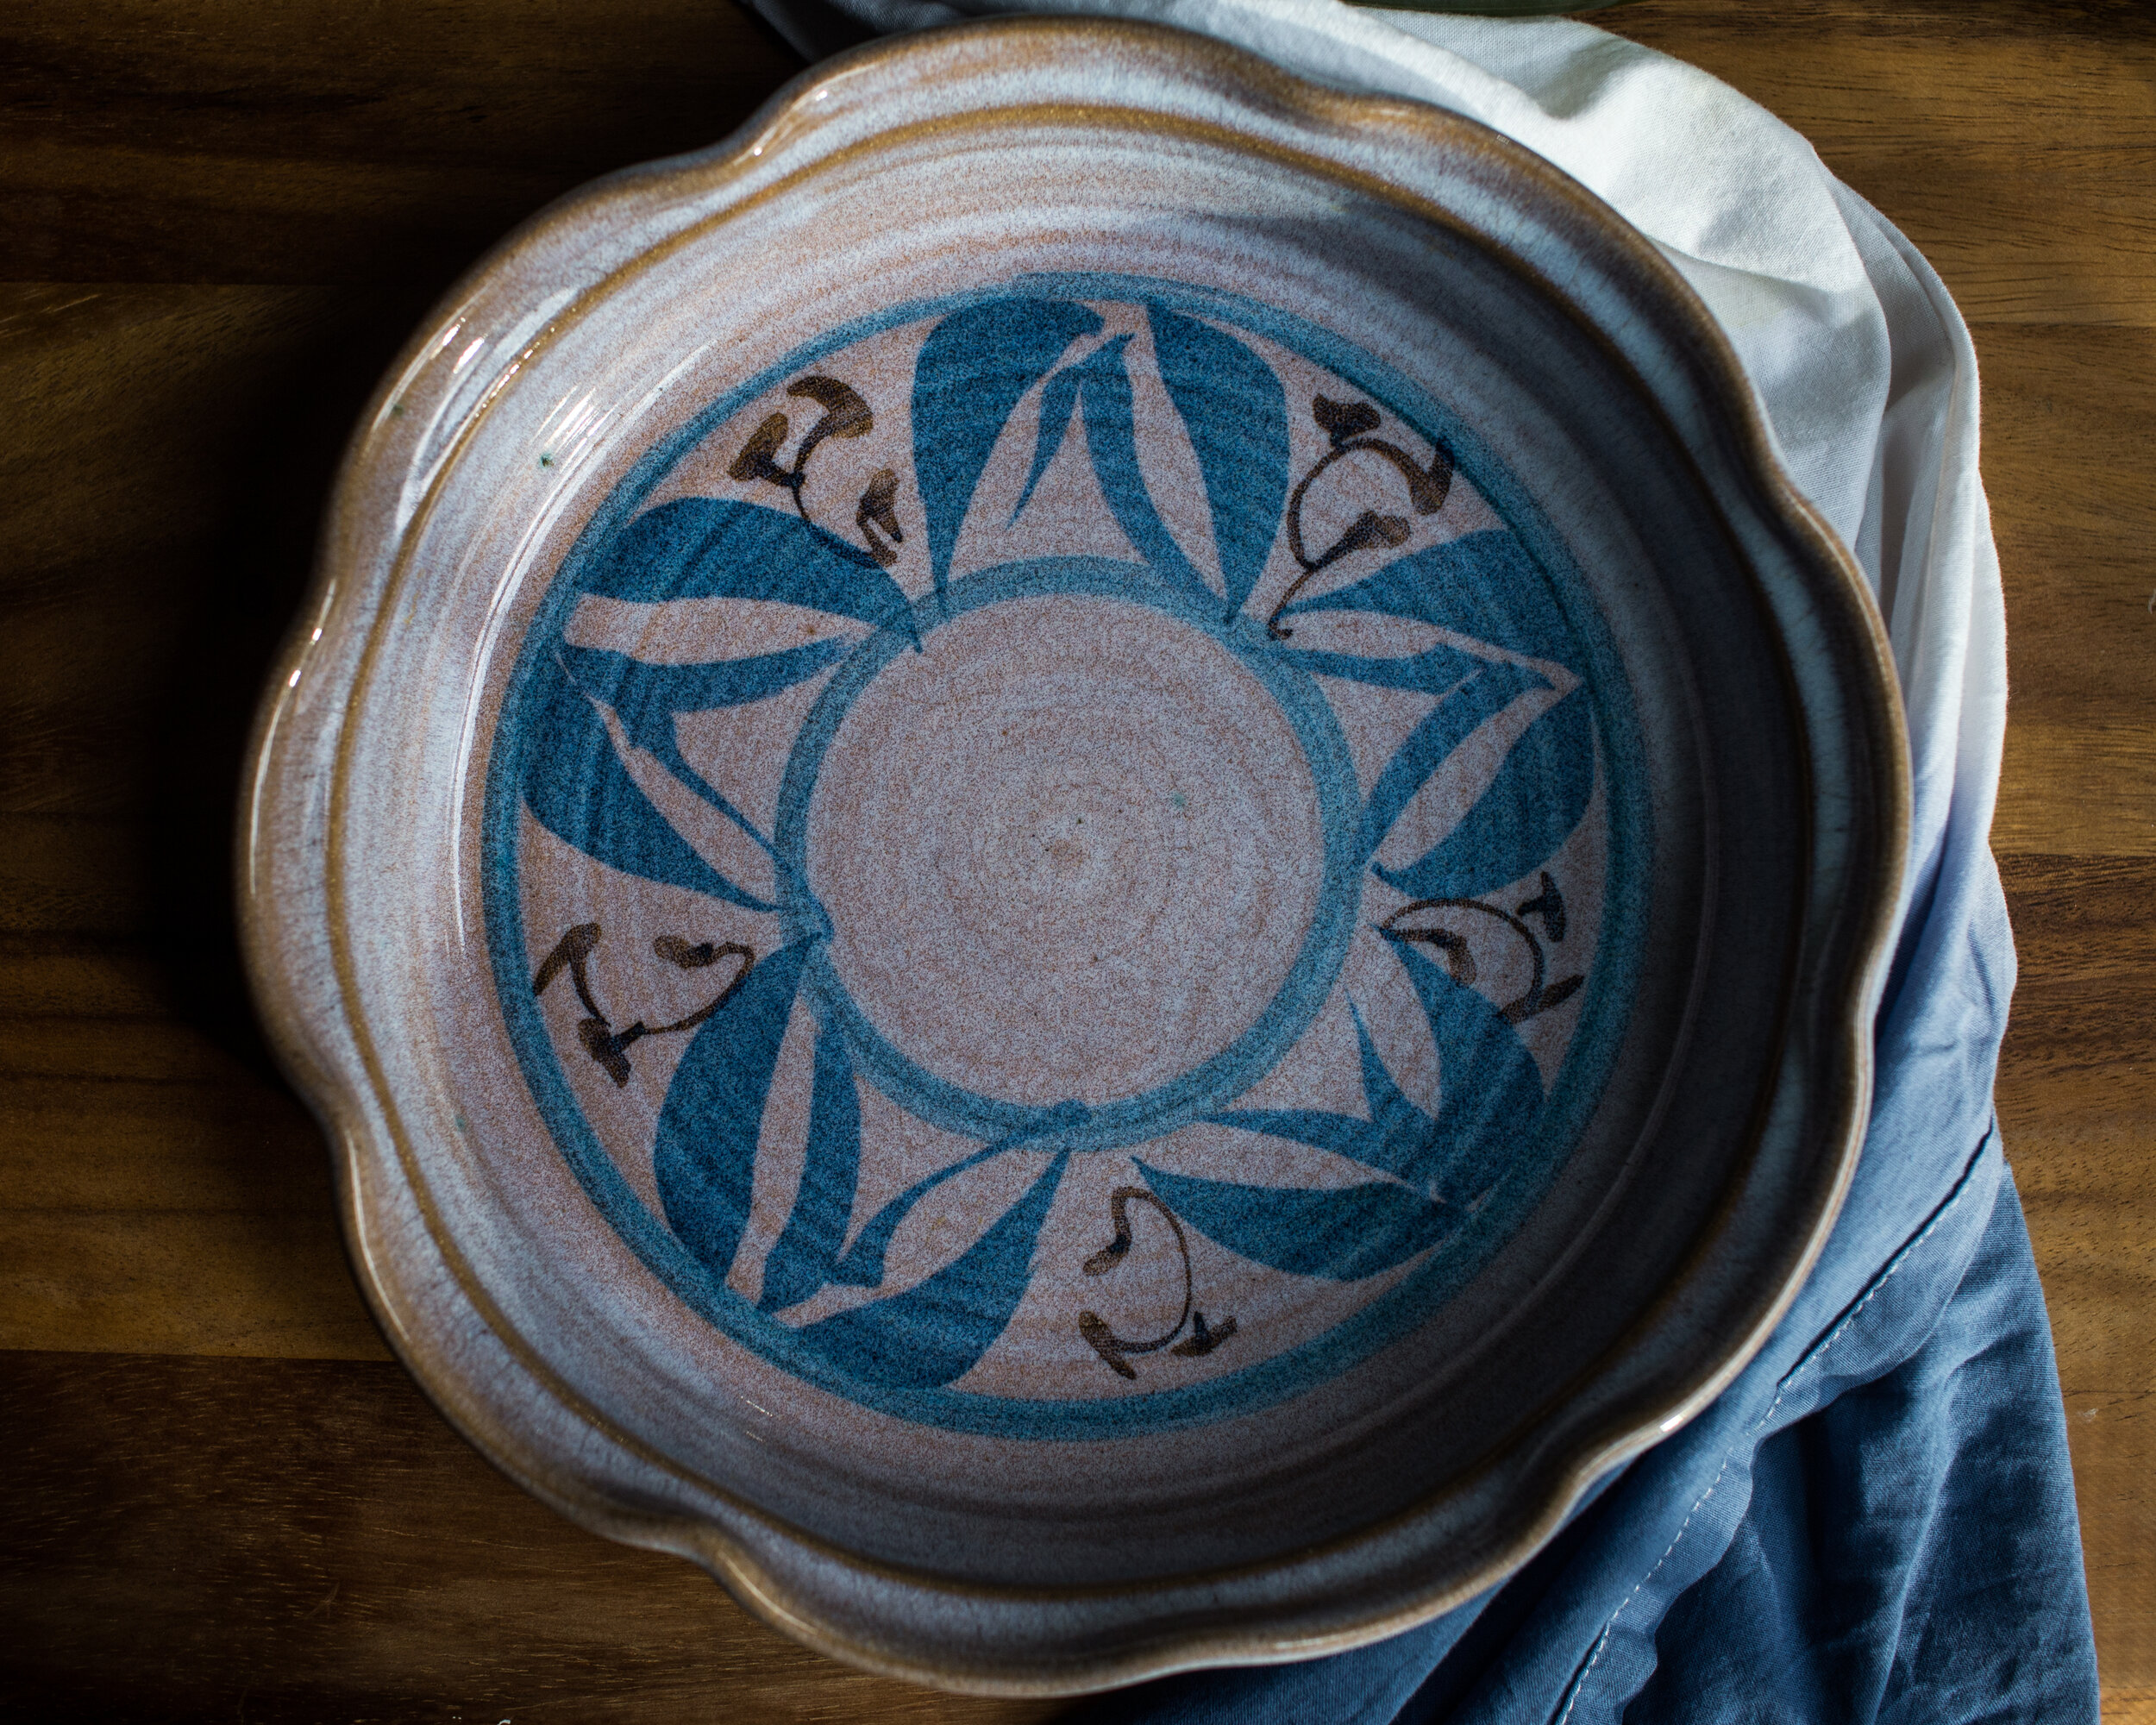 New handmade pottery pie dish to add to my collection. Too pretty not to share!